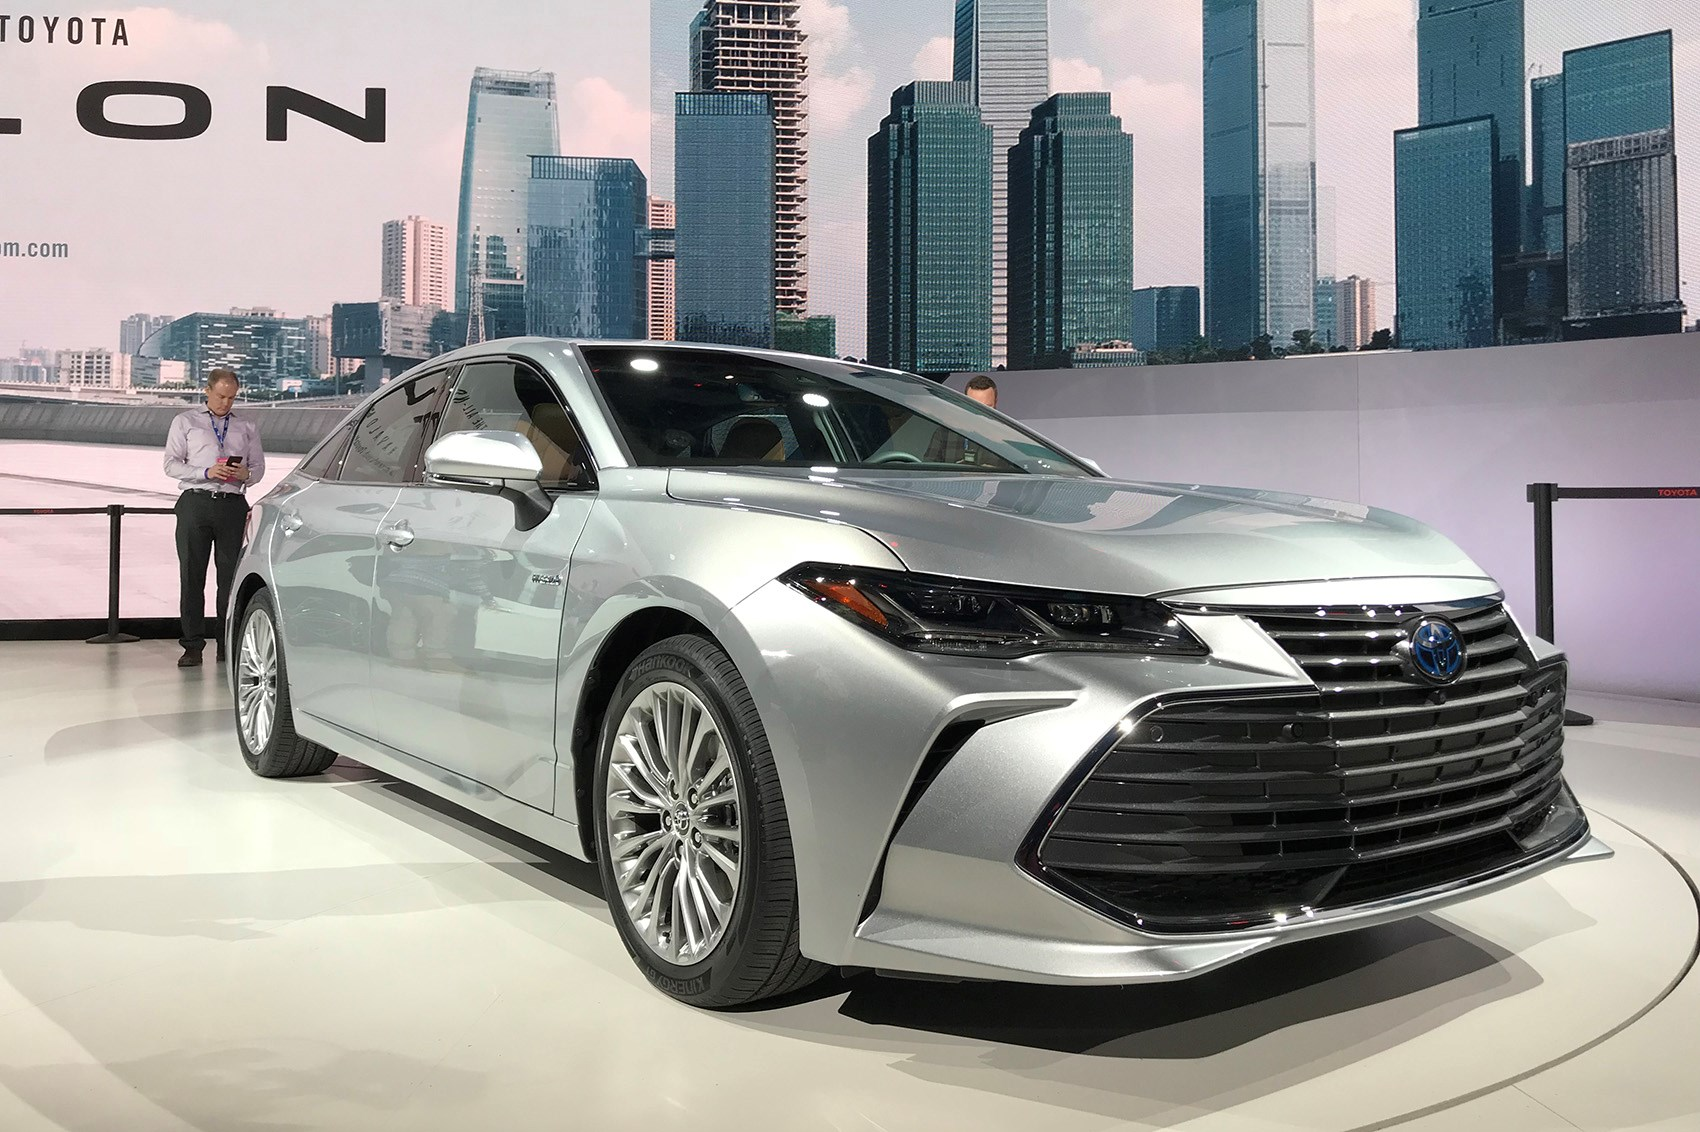 hybriddriven speed hybrid driven avalon top toyota cars